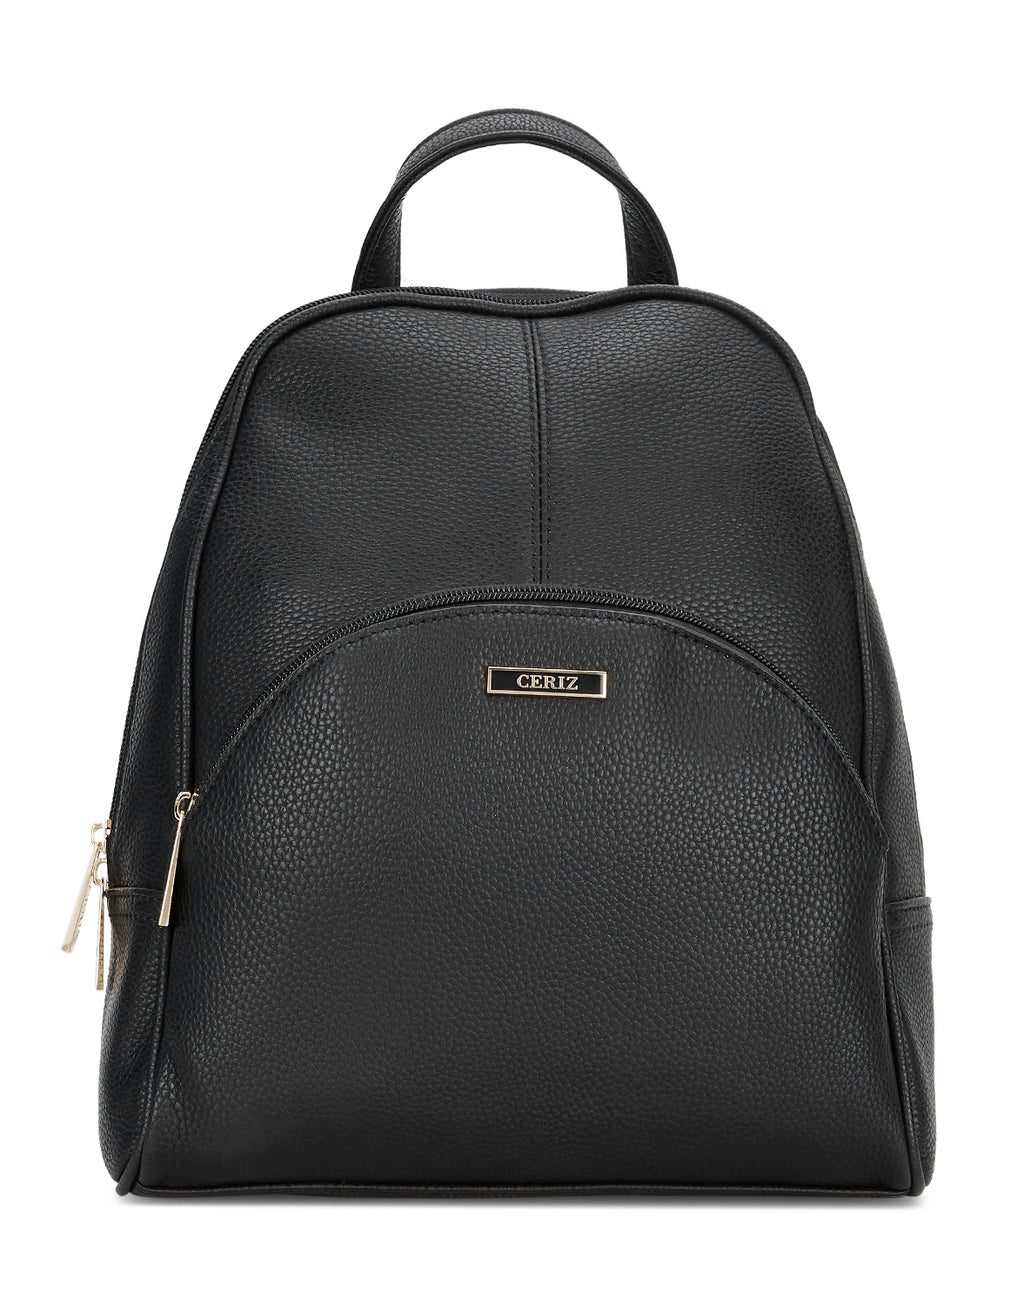 Emblyn Black Faux Leather Backpack